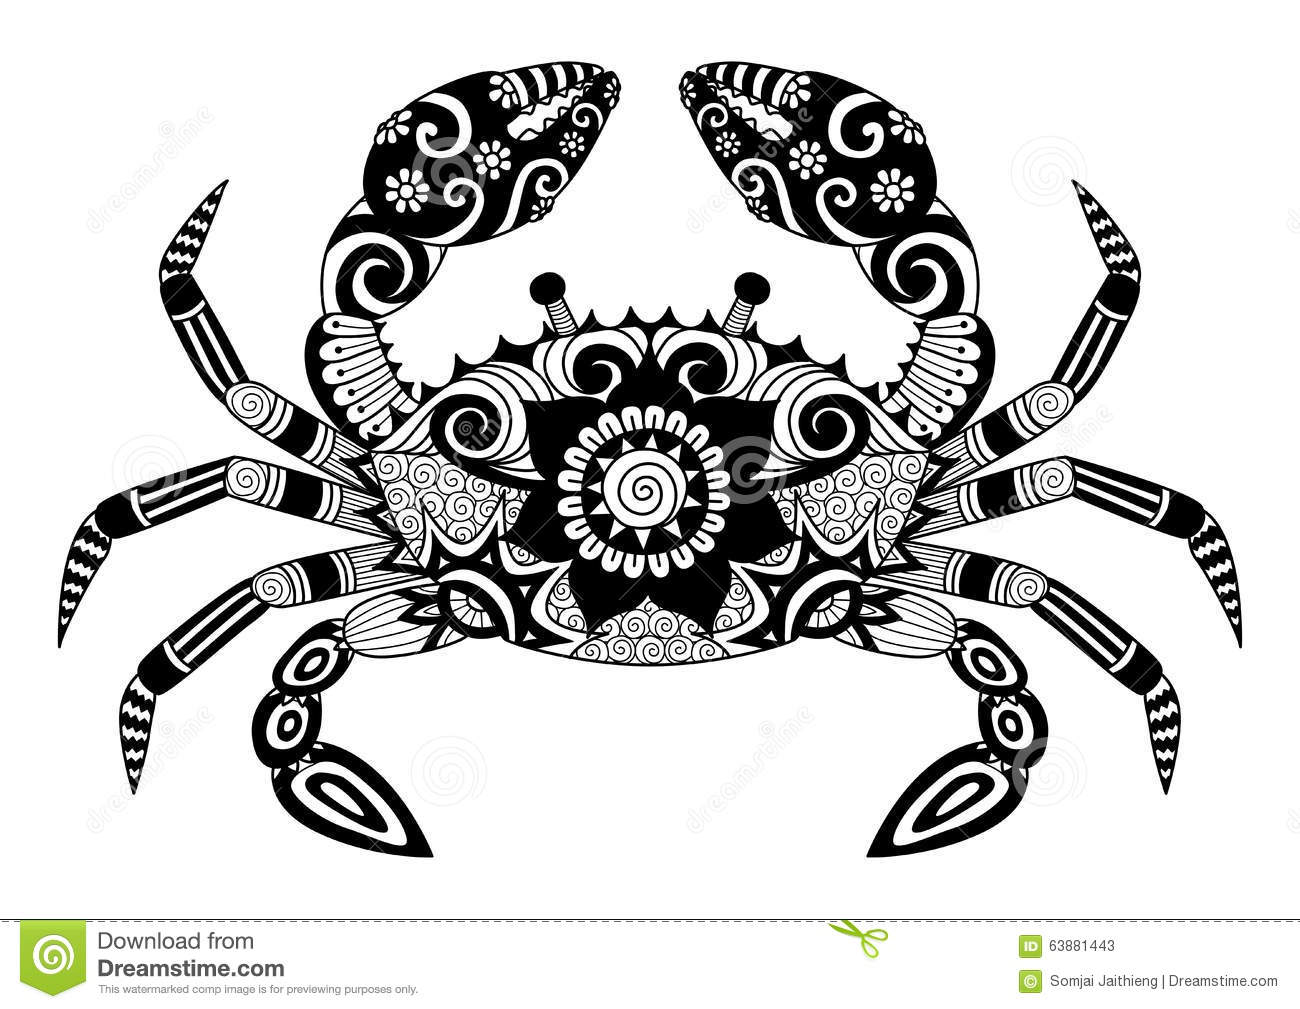 Hand Drawn Zentangle Crab For Coloring Book For Adult, Tattoo, Shirt Design, Logo And So On ...